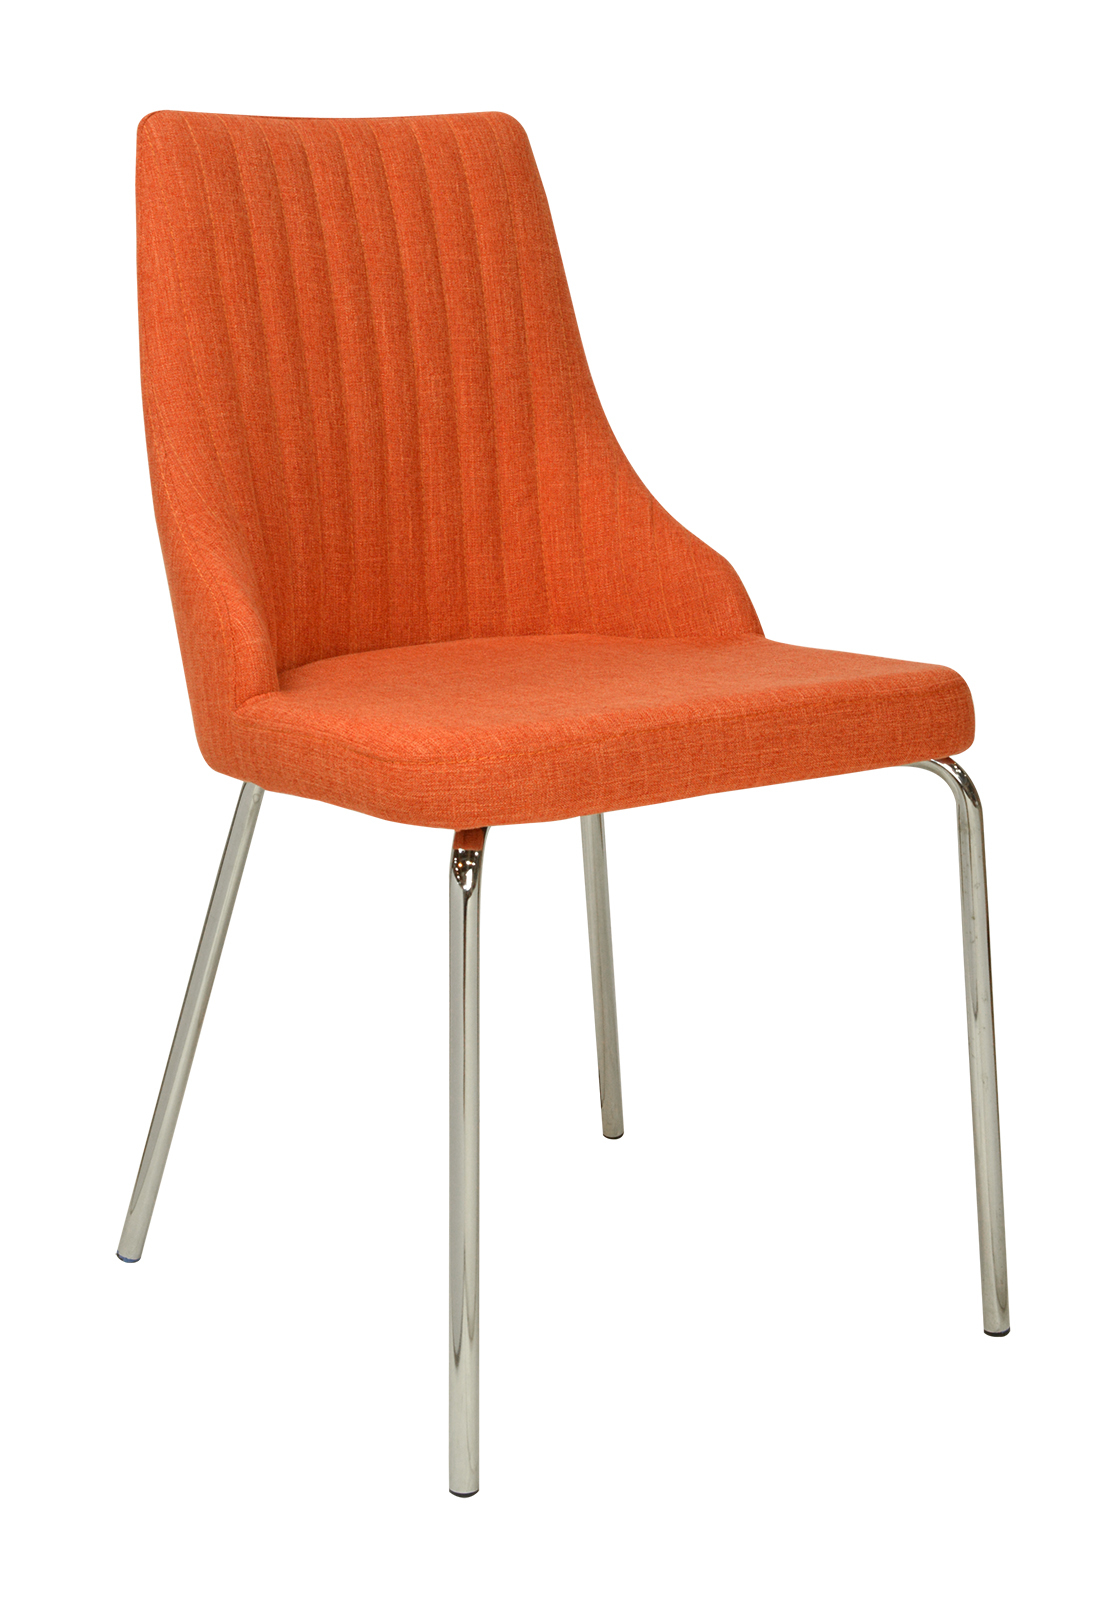 dining chair B 514 orange back.jpg